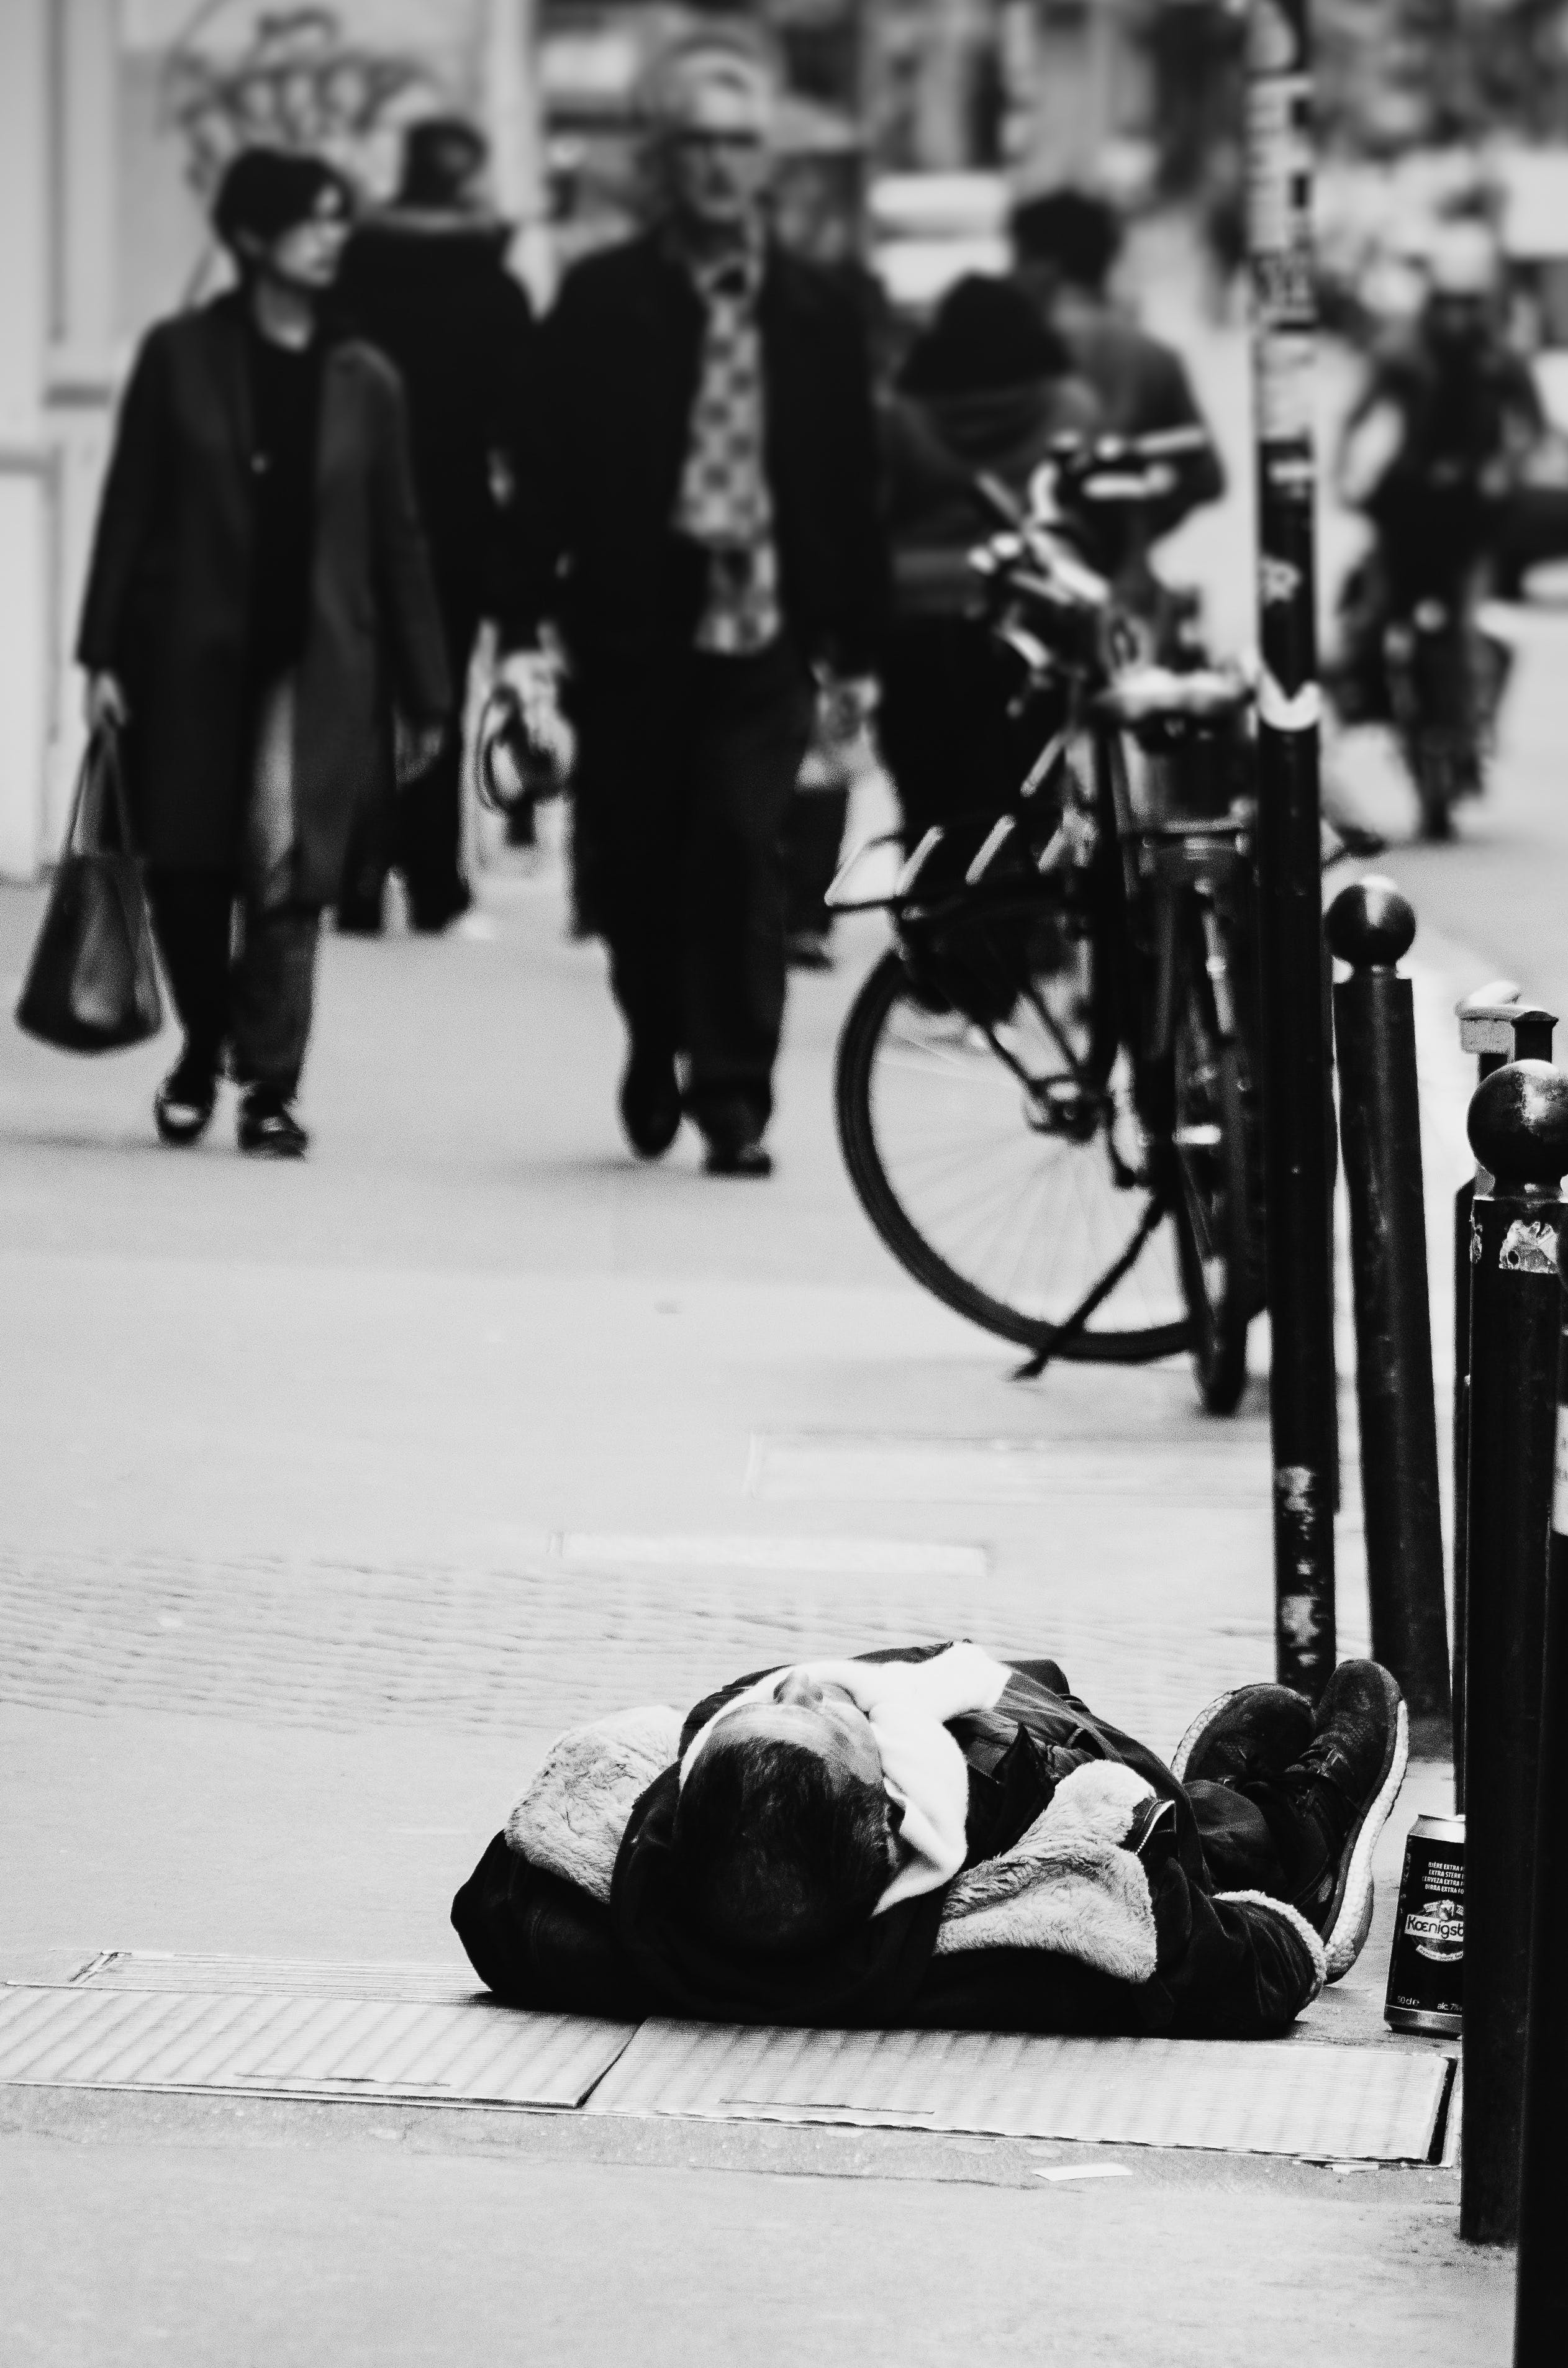 Free stock photo of city life, homelessness